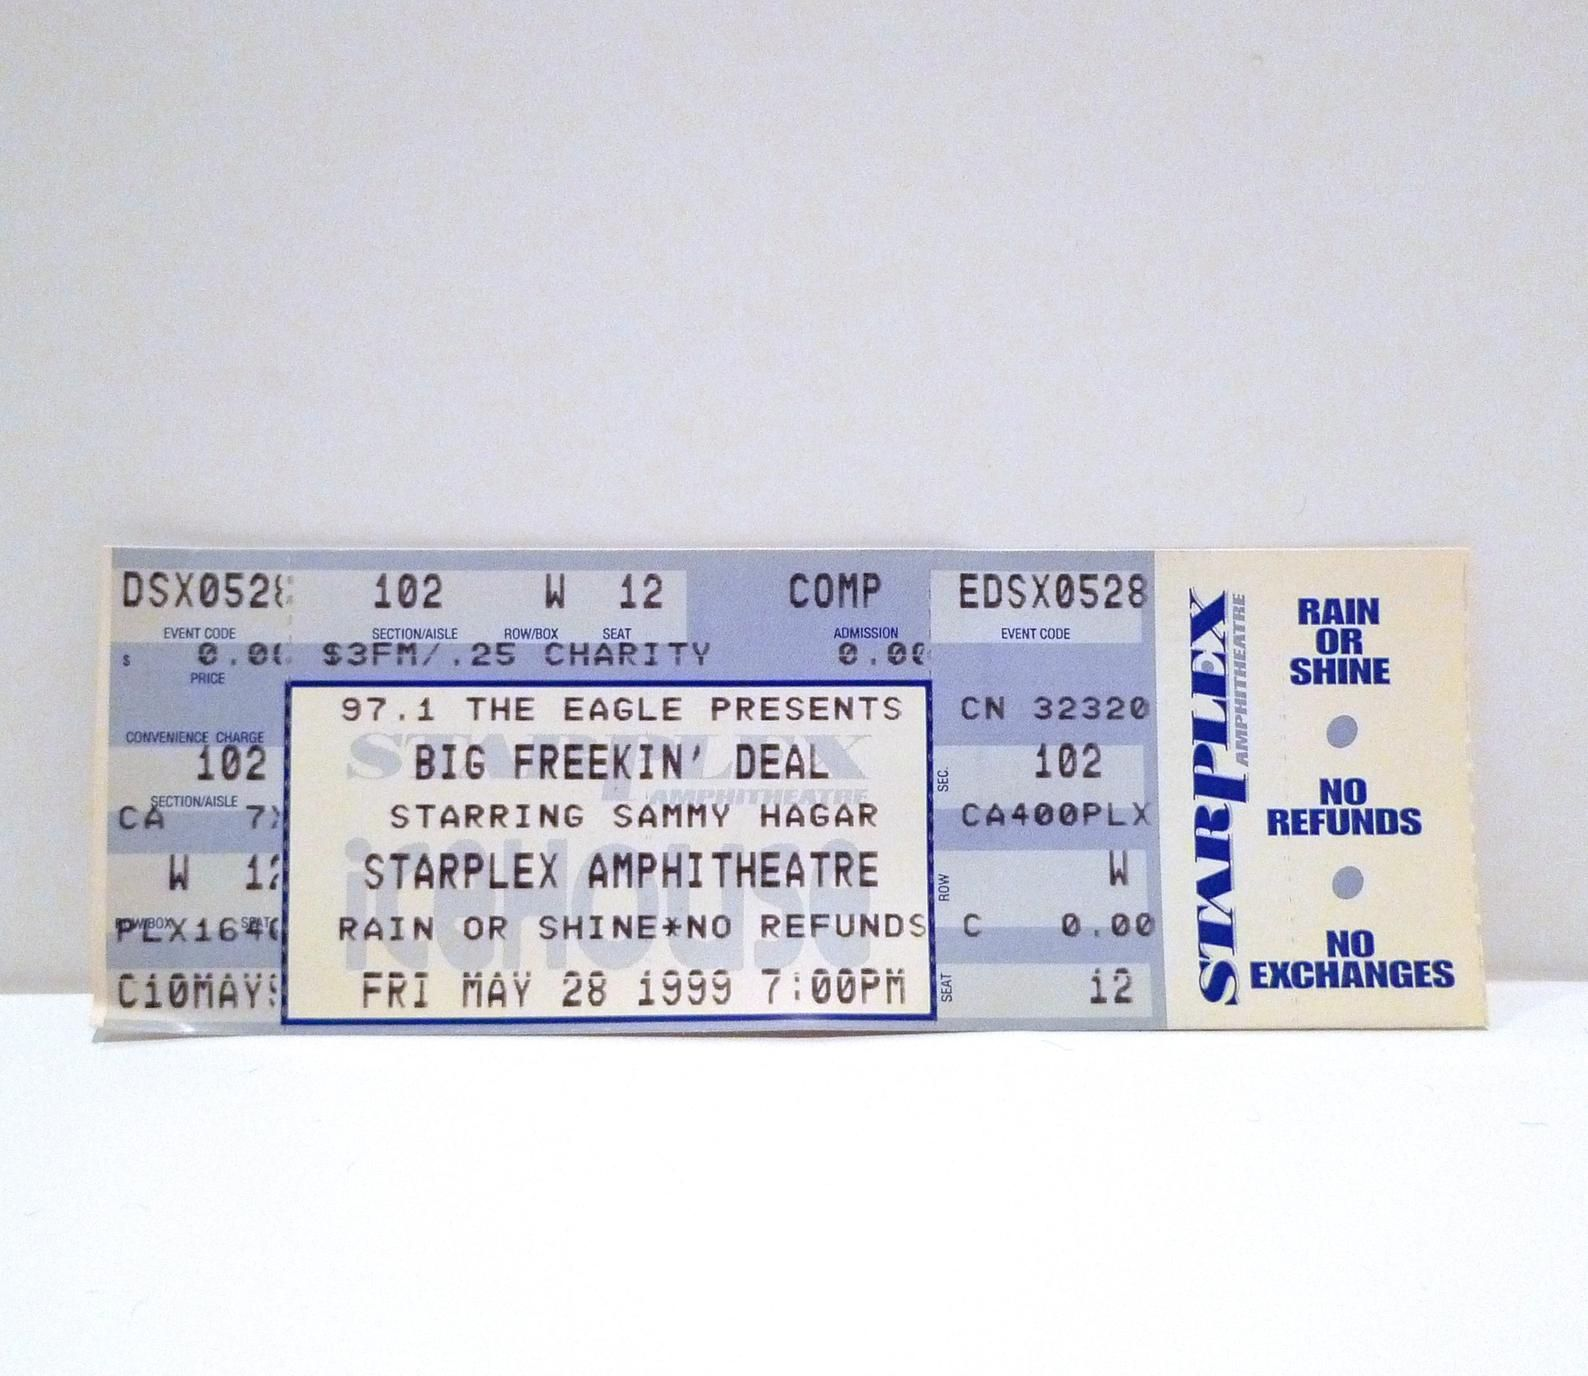 Sammy Hagar Ticket 5 28 99 Big Freekin Deal Tour Dallas Texas Starplex Vintage Never Used Concert Ticket May 28 1999 Mohawk Music In 2020 With Images Record Store Press Kit Dallas